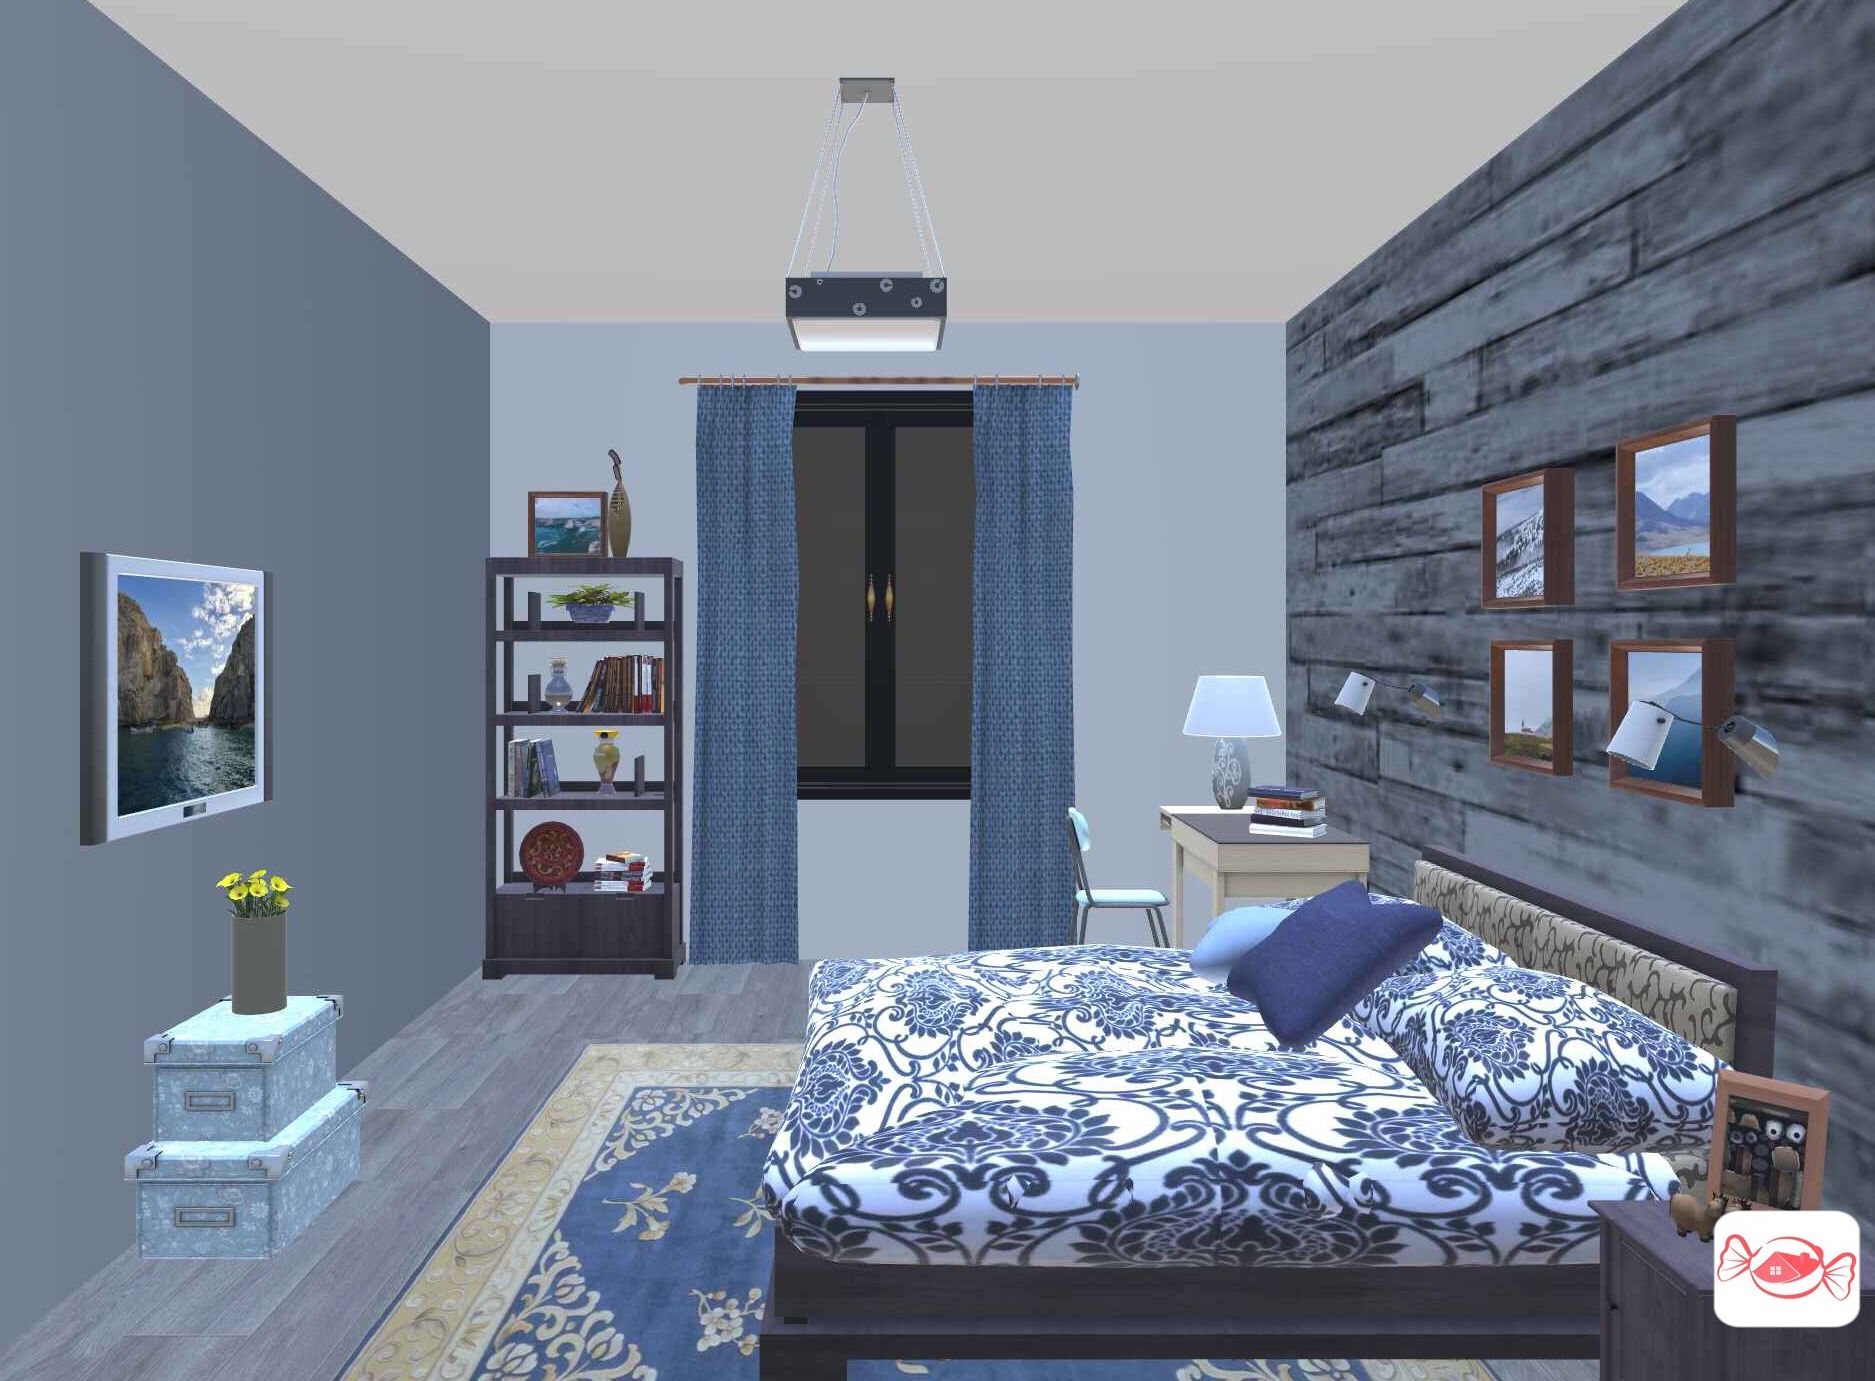 Rustic bedroom design created with Home Sweet Home 3D app